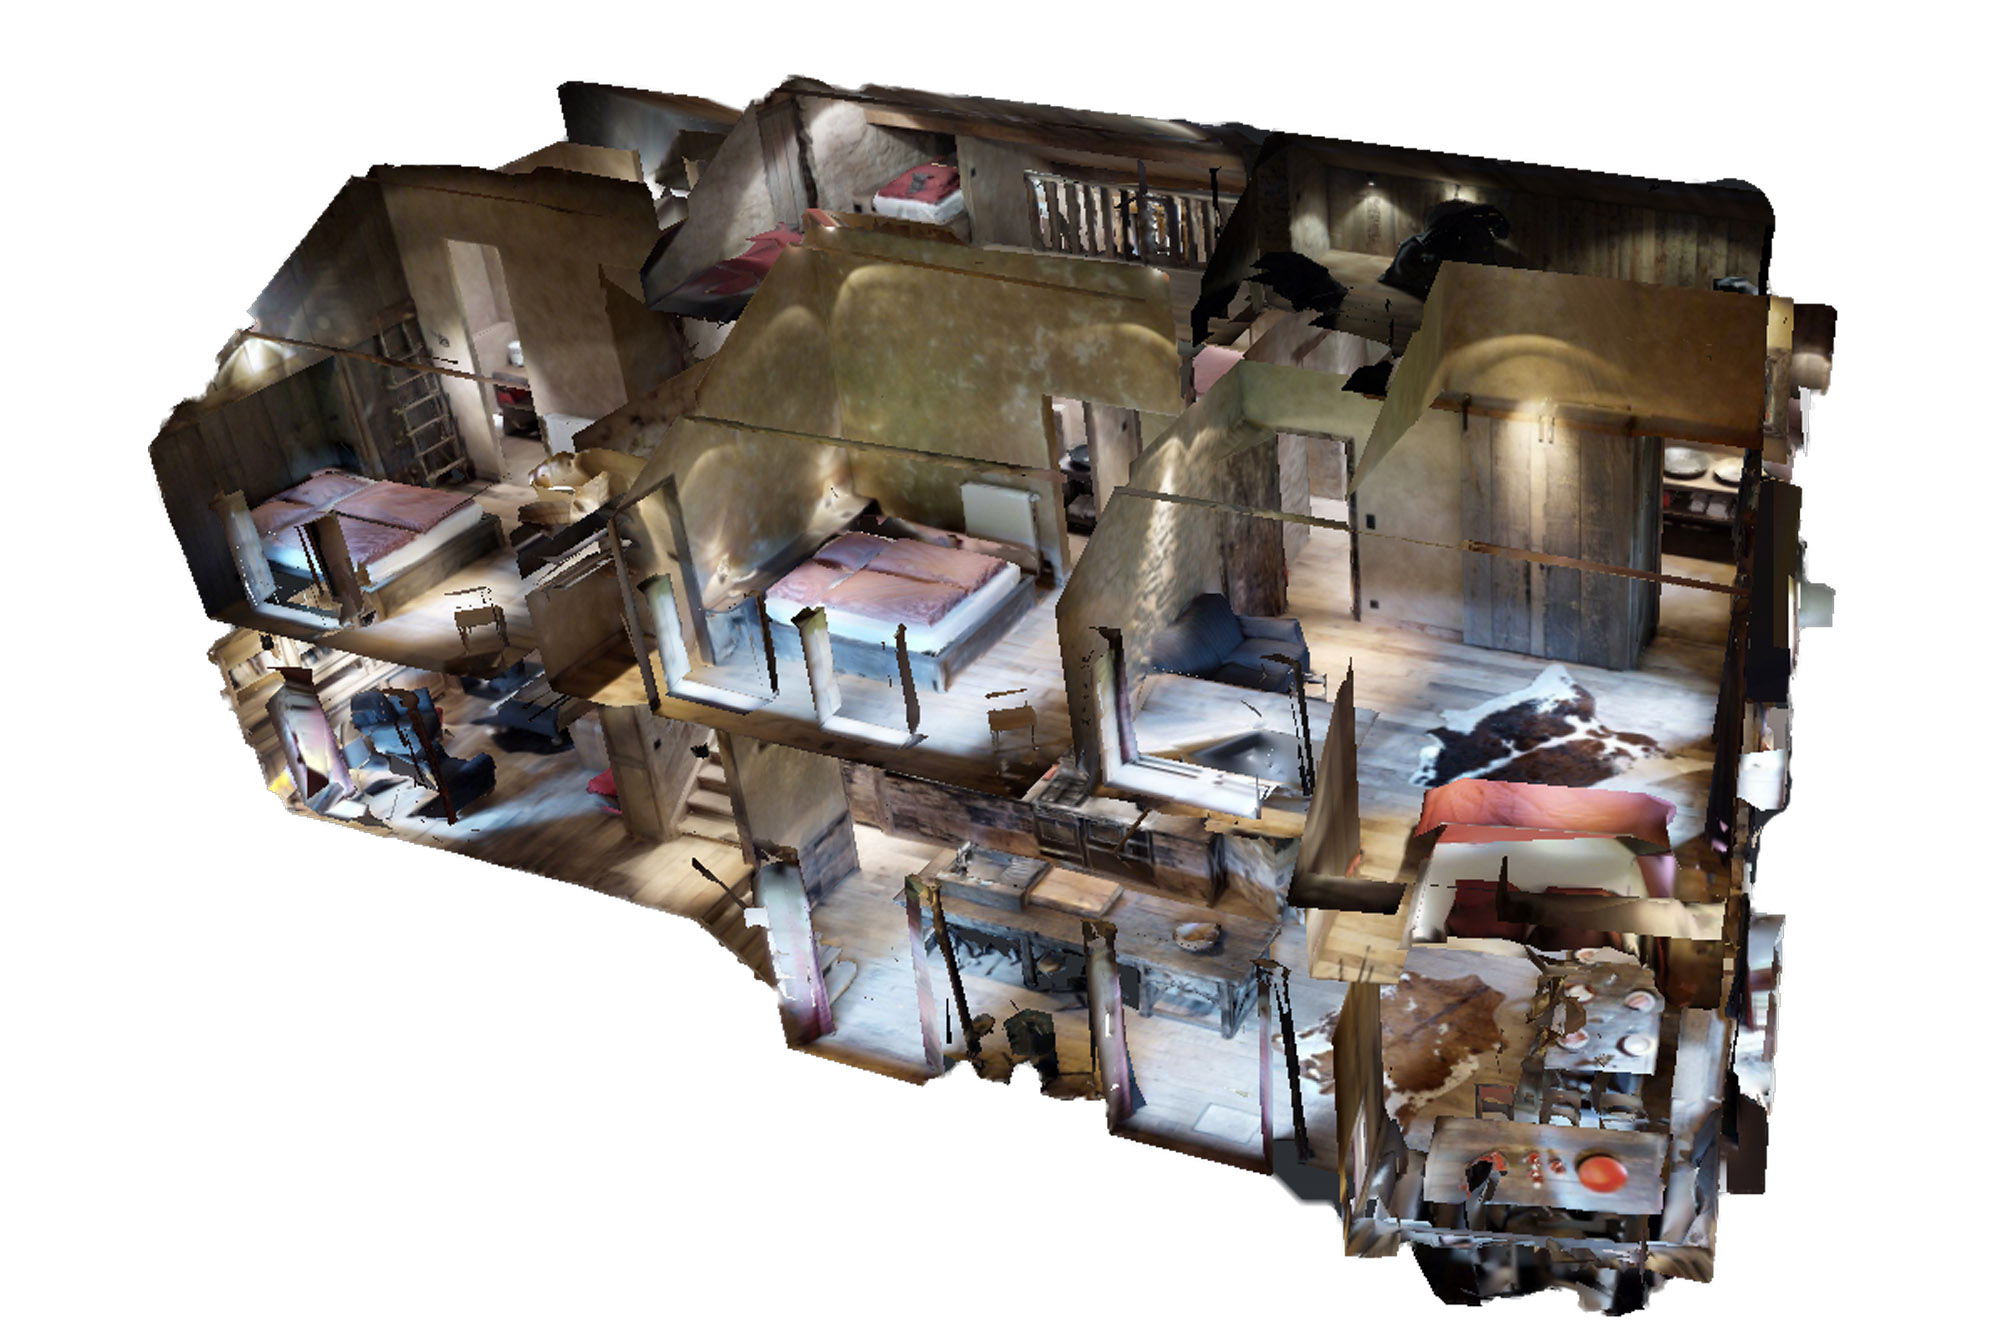 Ardenne-residences-holiday-houses-virtual-reality-360-3D-dollhouse